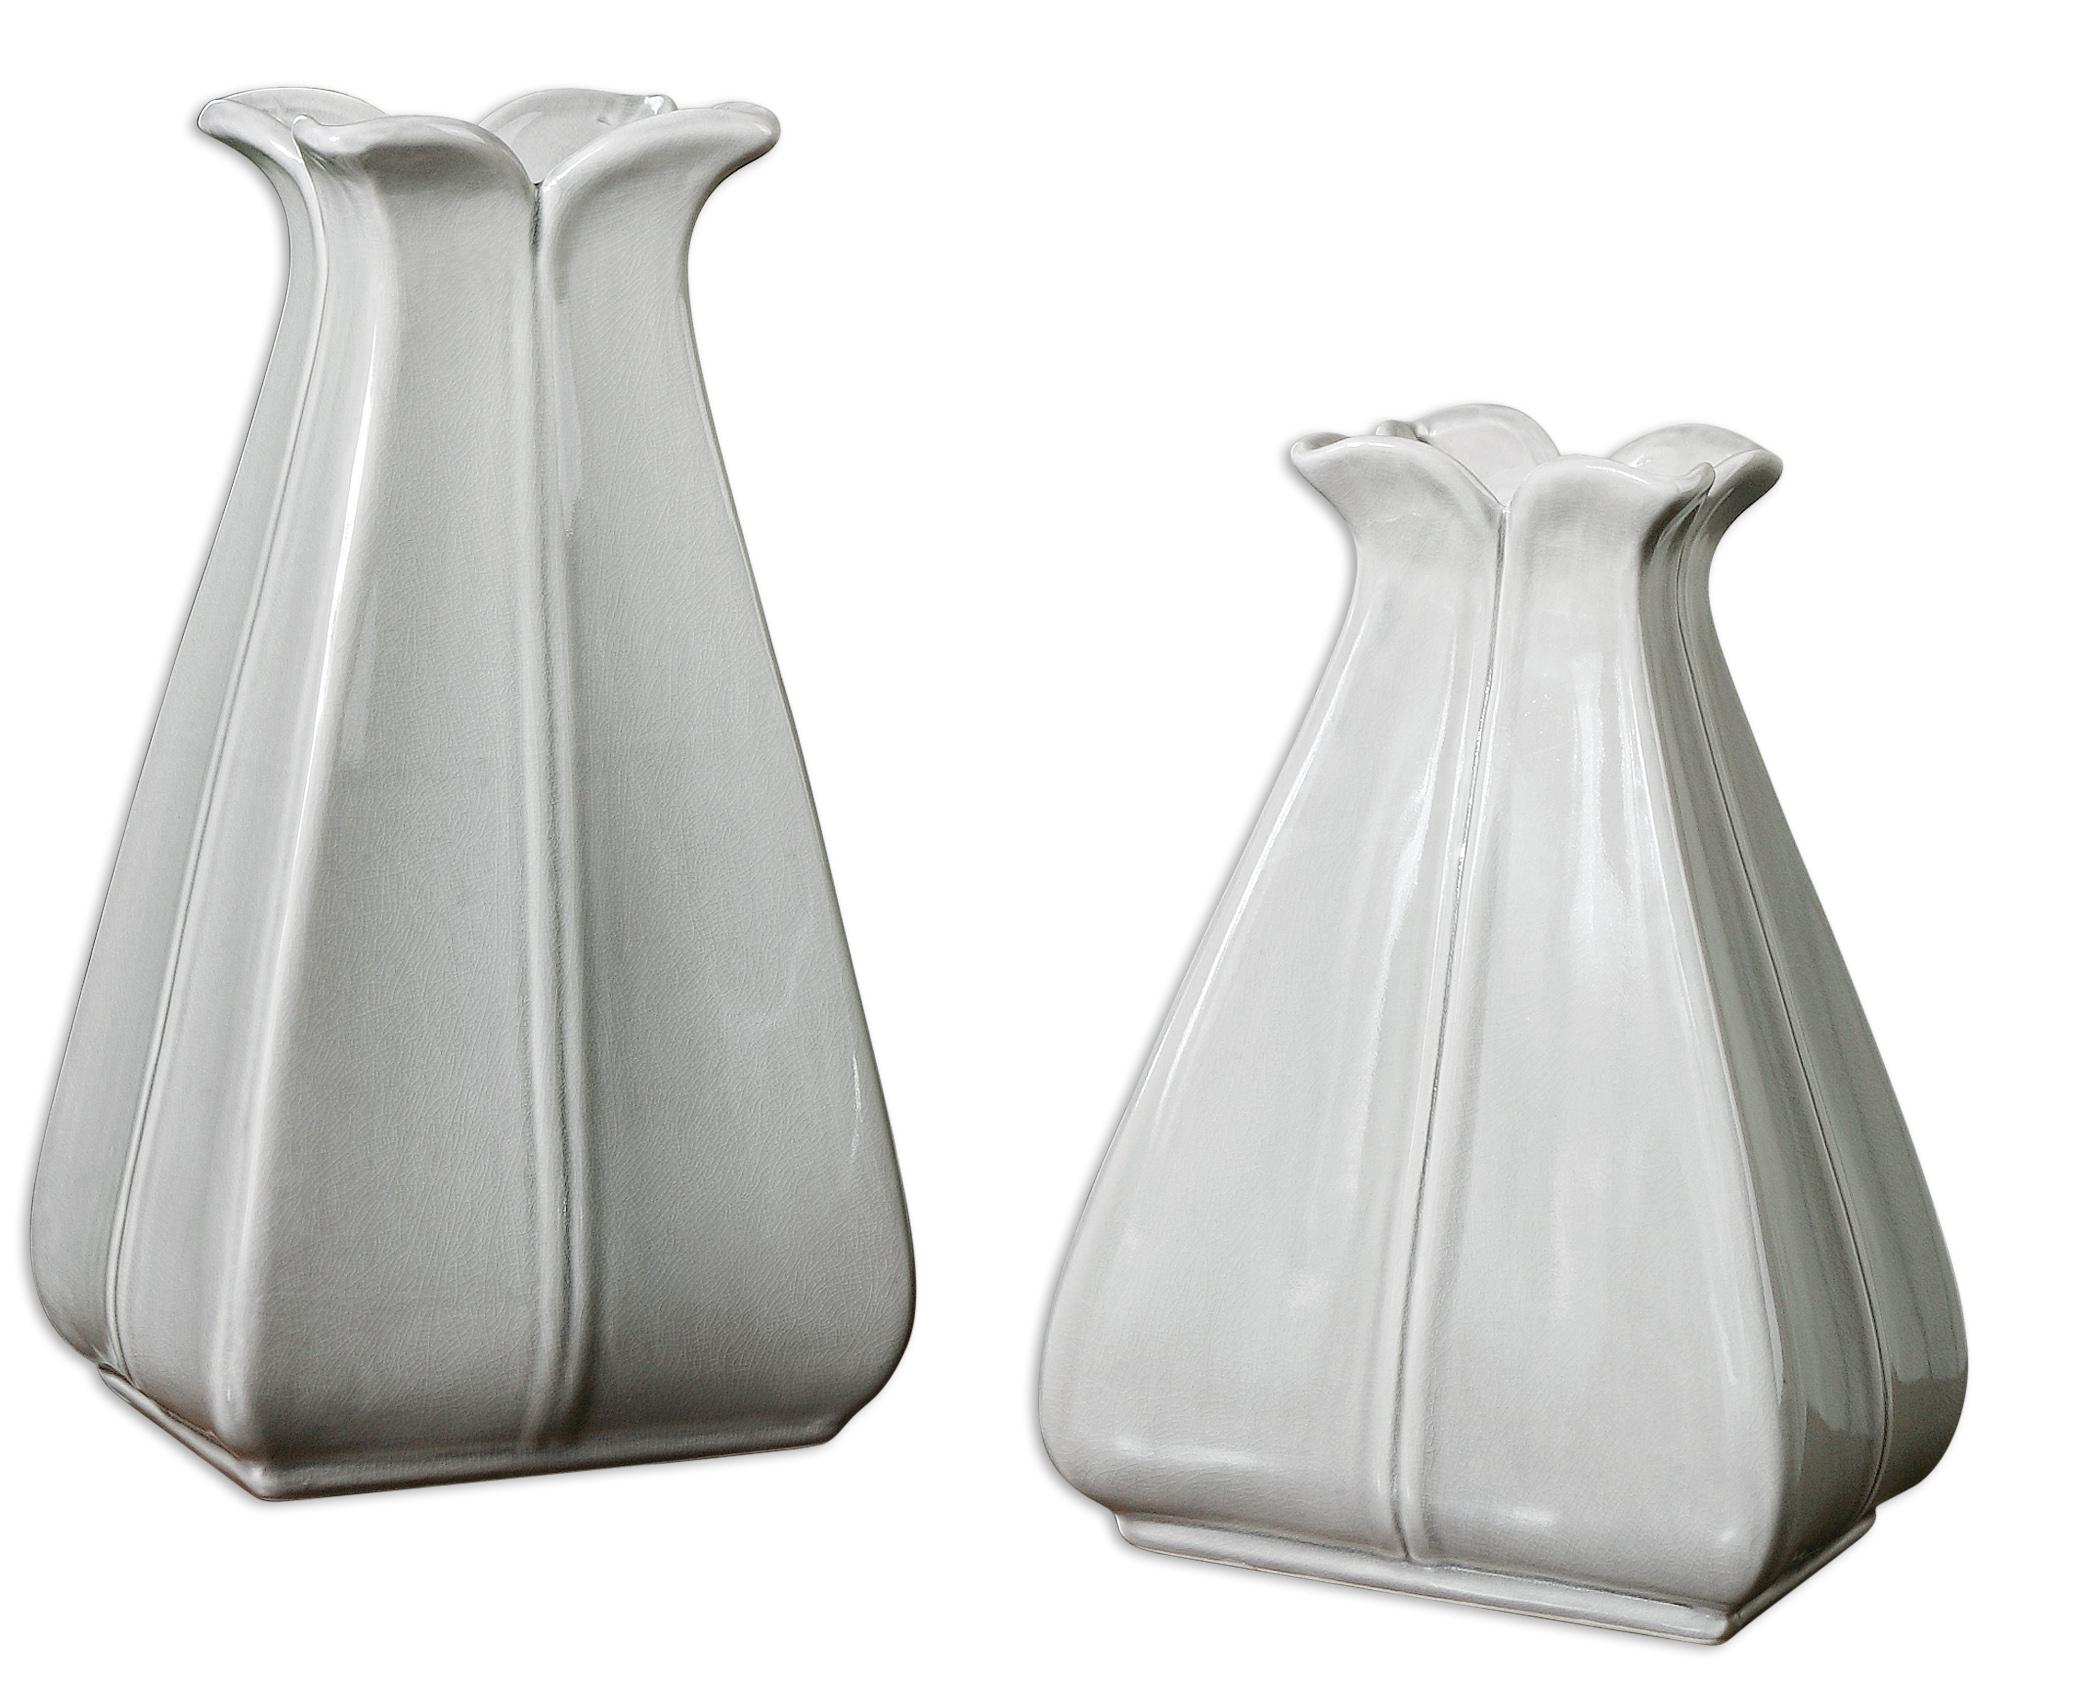 Accessories - Vases and Urns Florina Vases Set of 2 at Bennett's Furniture and Mattresses